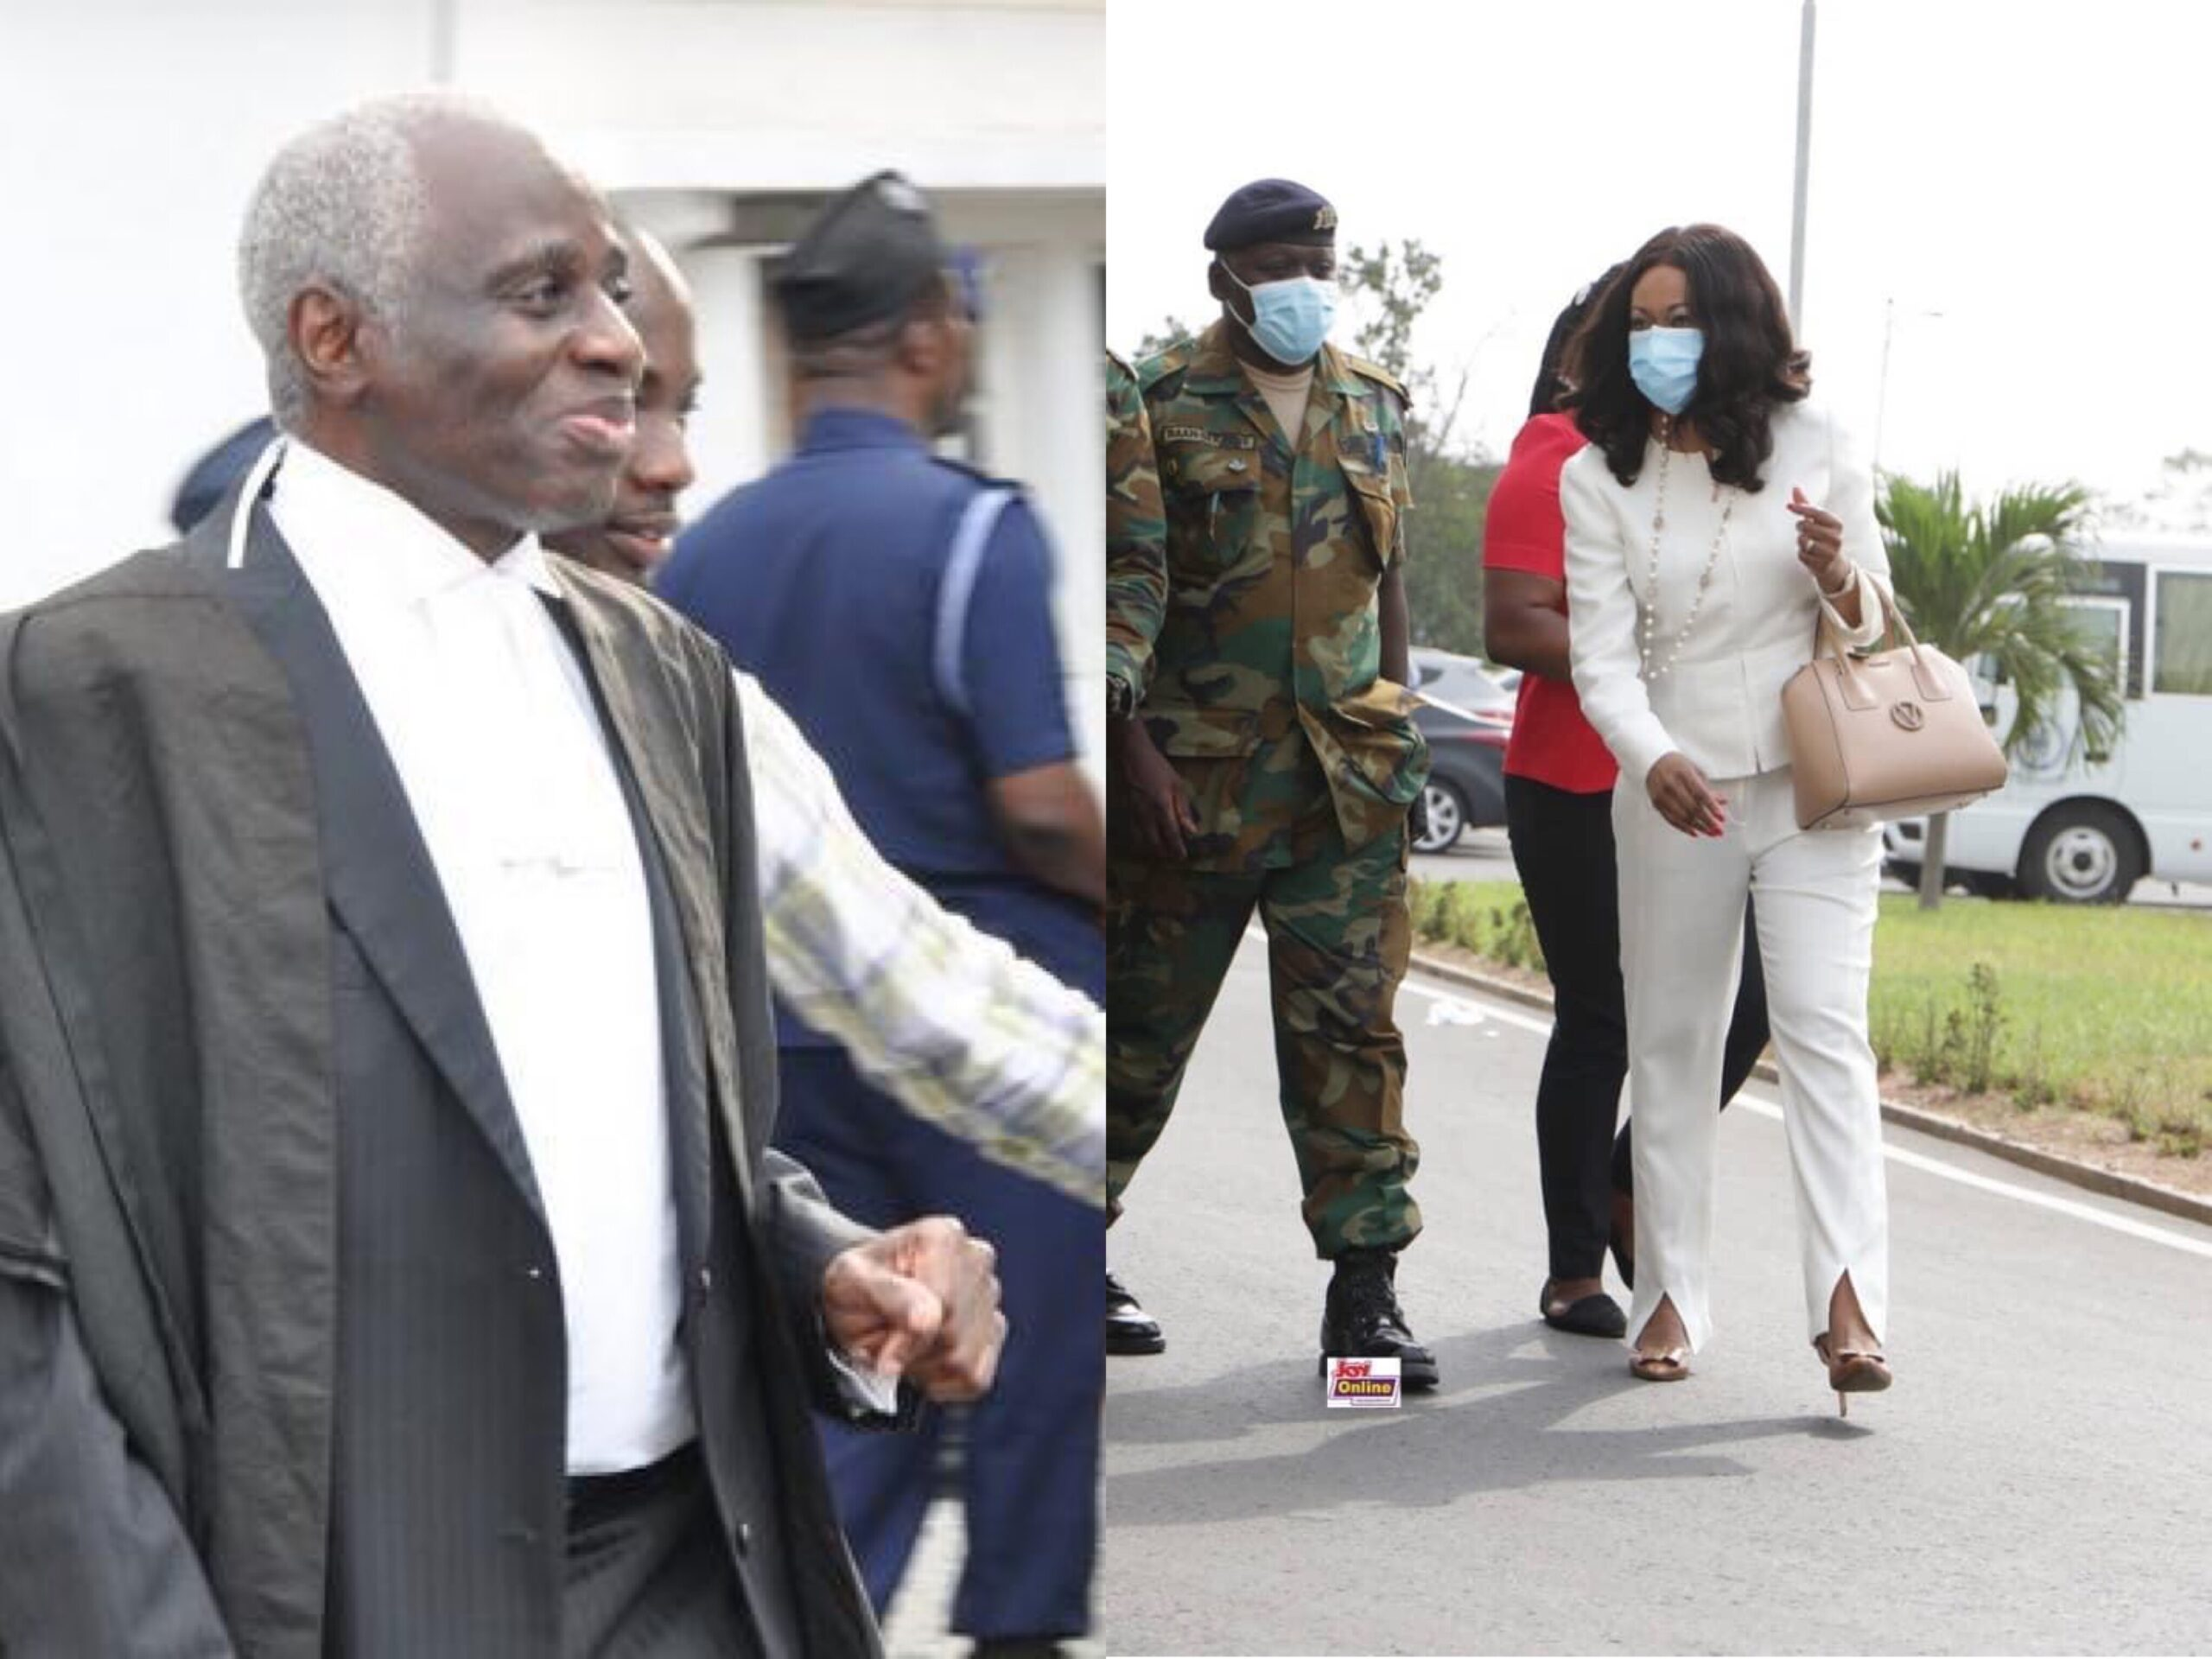 We Can File For A Subpoena To Force Jean Mensah Into The Witness Box If She Refuses To Testify – Tsikata Tells Supreme Court